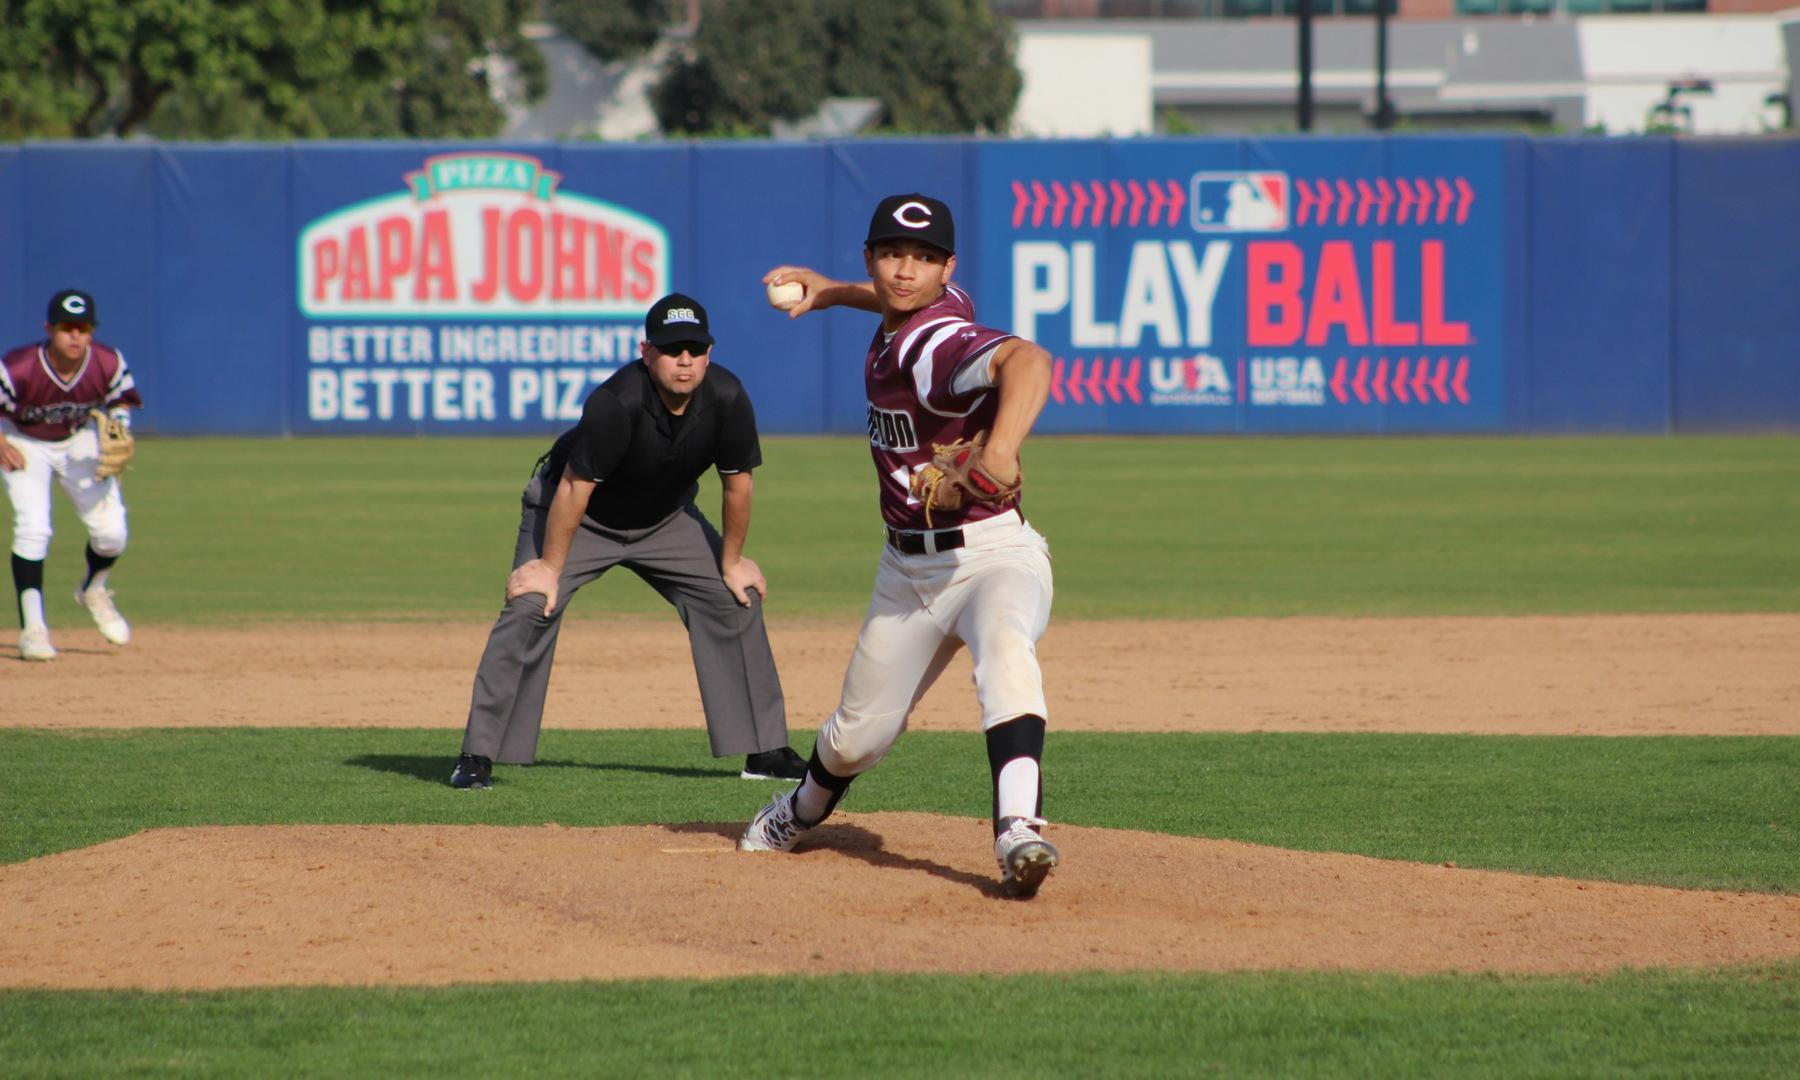 Baseball Caps March with Pair of Wins over West Hills Coalinga